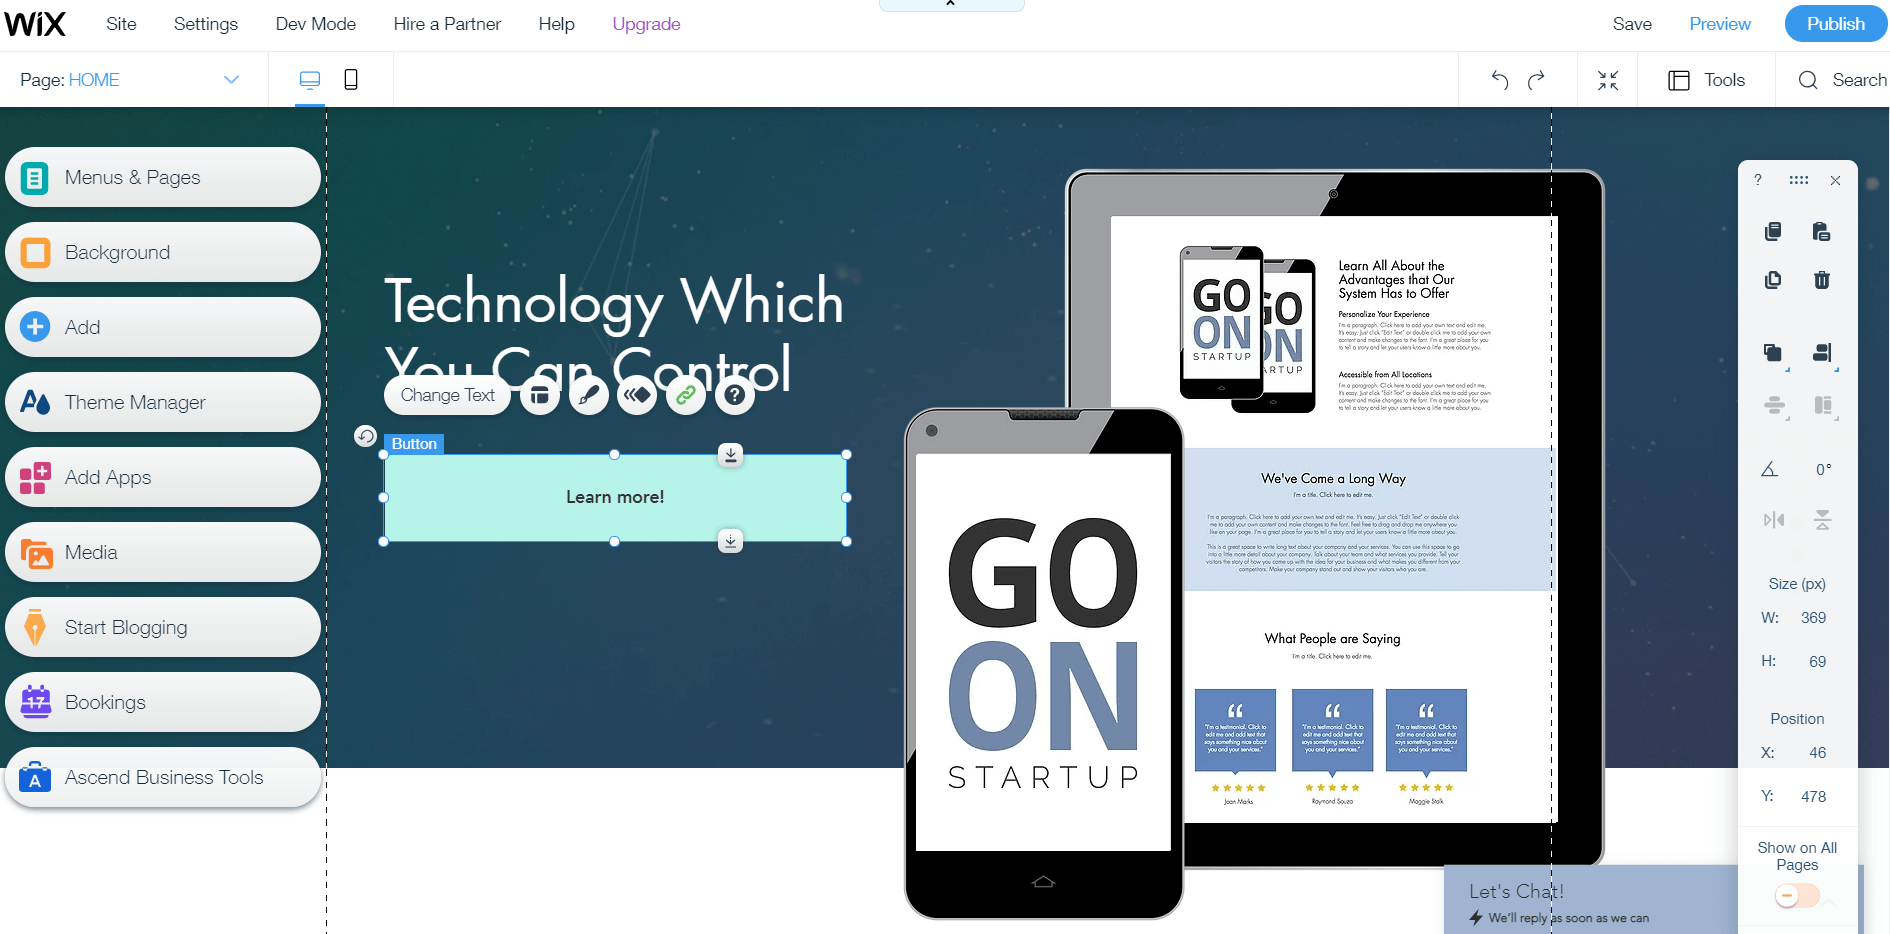 Wix page editor